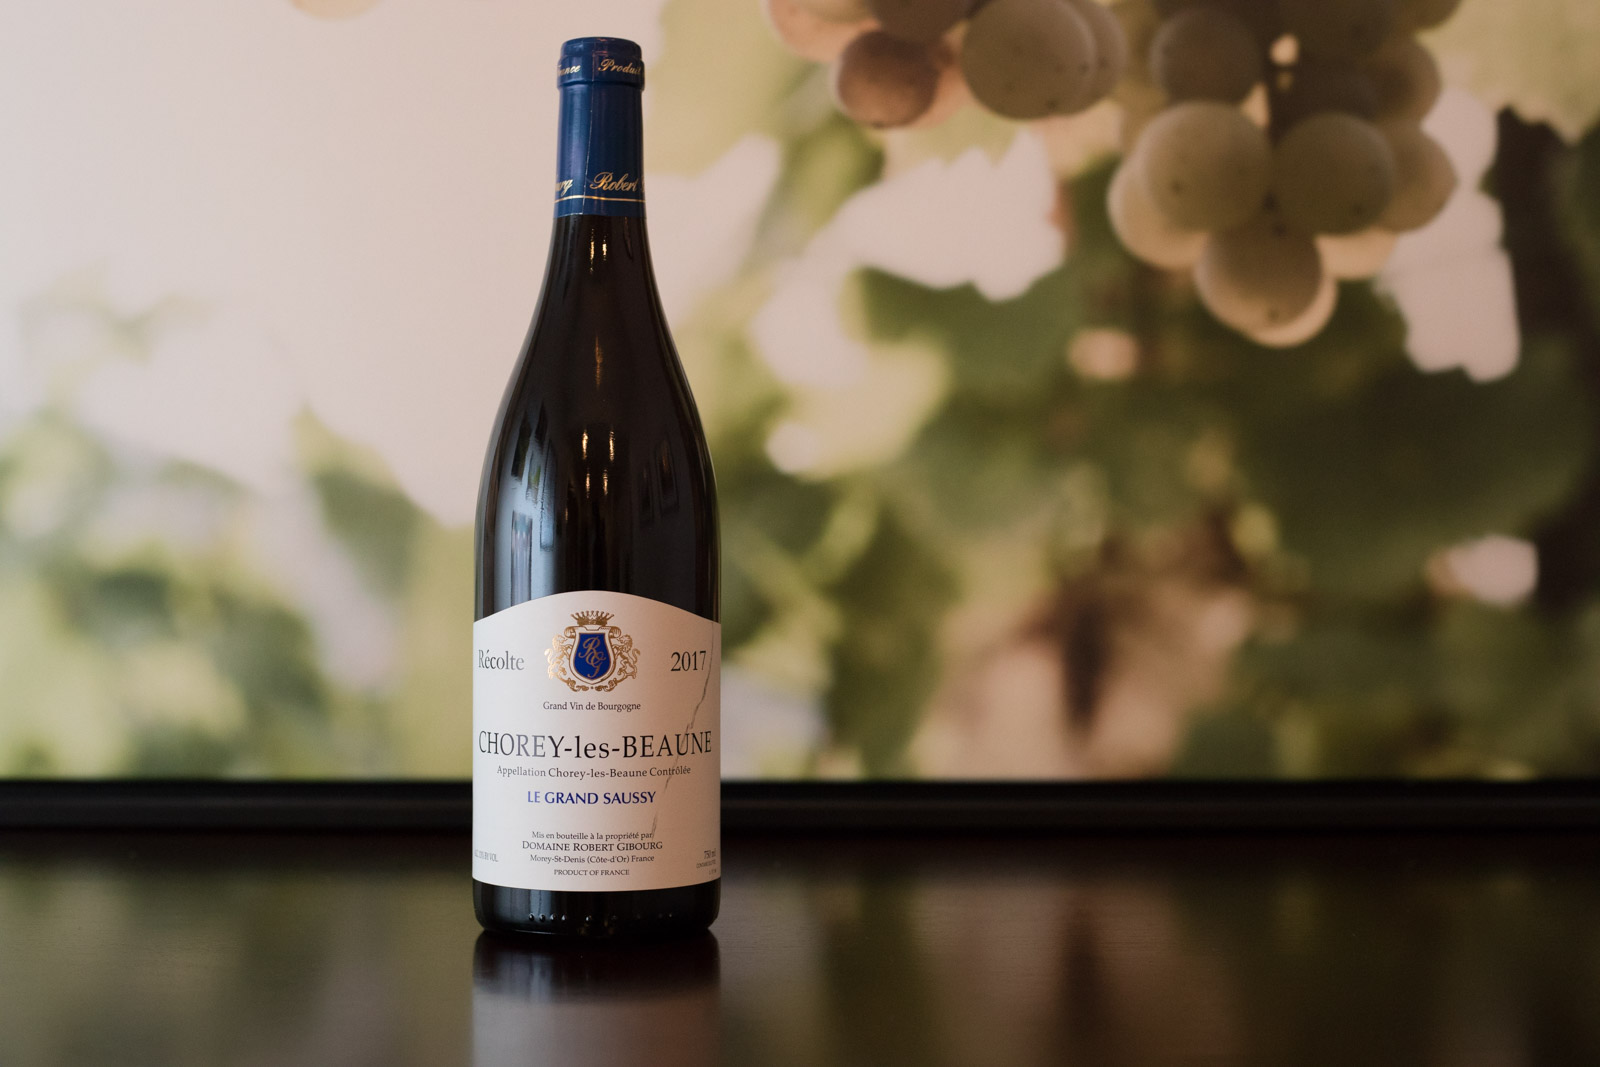 """2017 Domaine Robert Gibourg """"Le Grand Saussy"""" Chorey-les-Beaune ©Kevin Day/Opening a Bottle"""